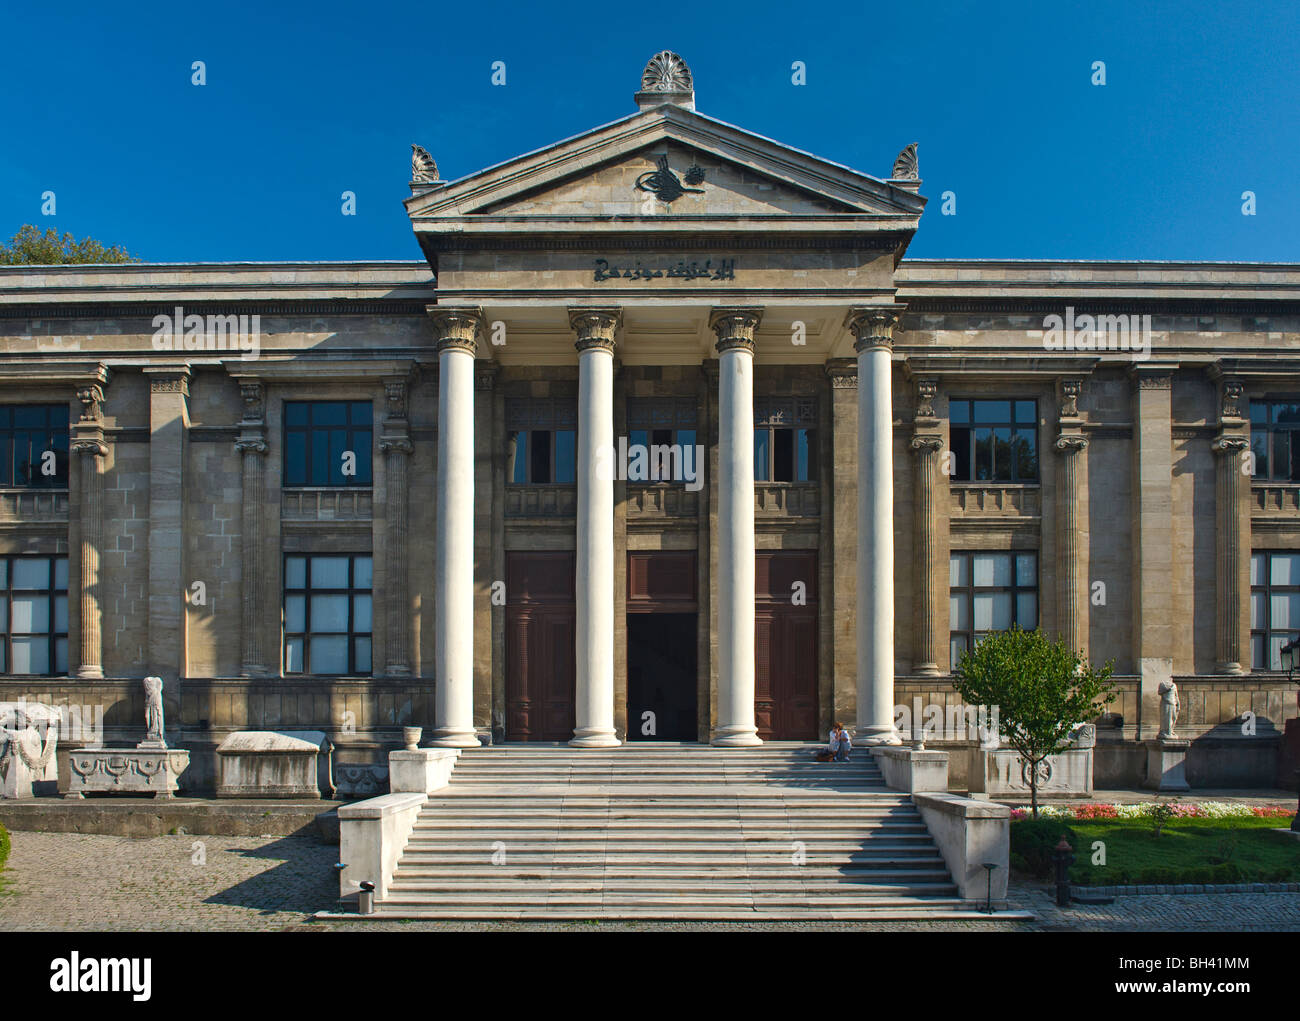 Istanbul Archaeology Museum, Turkey - Stock Image